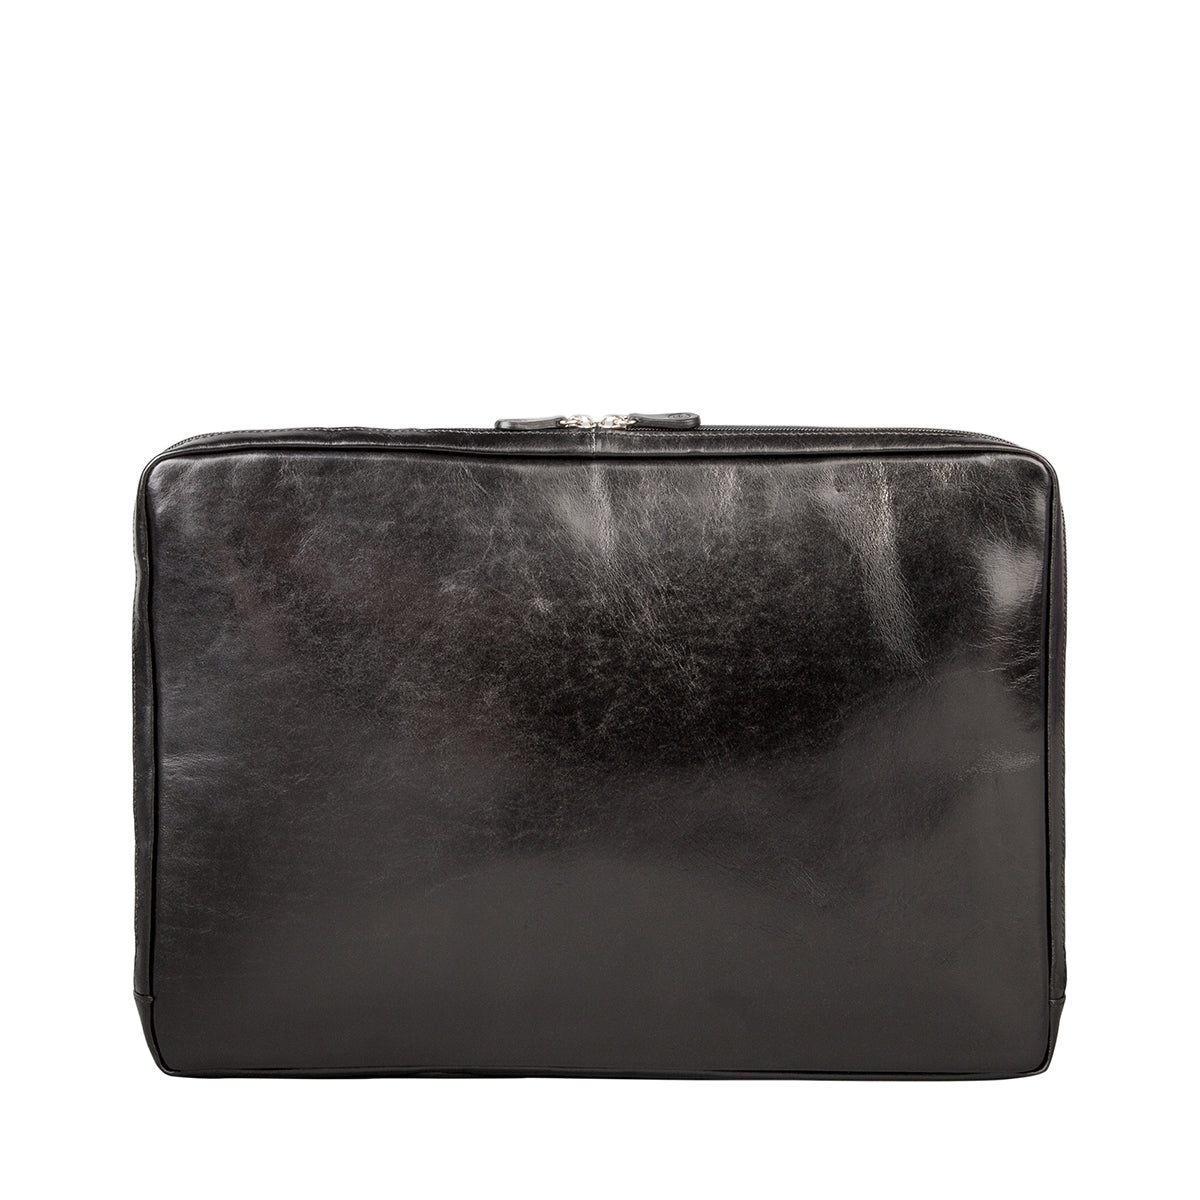 Image 3 of the 'Davoli' 17 Inch Black Veg-Tanned Leather Laptop Bag